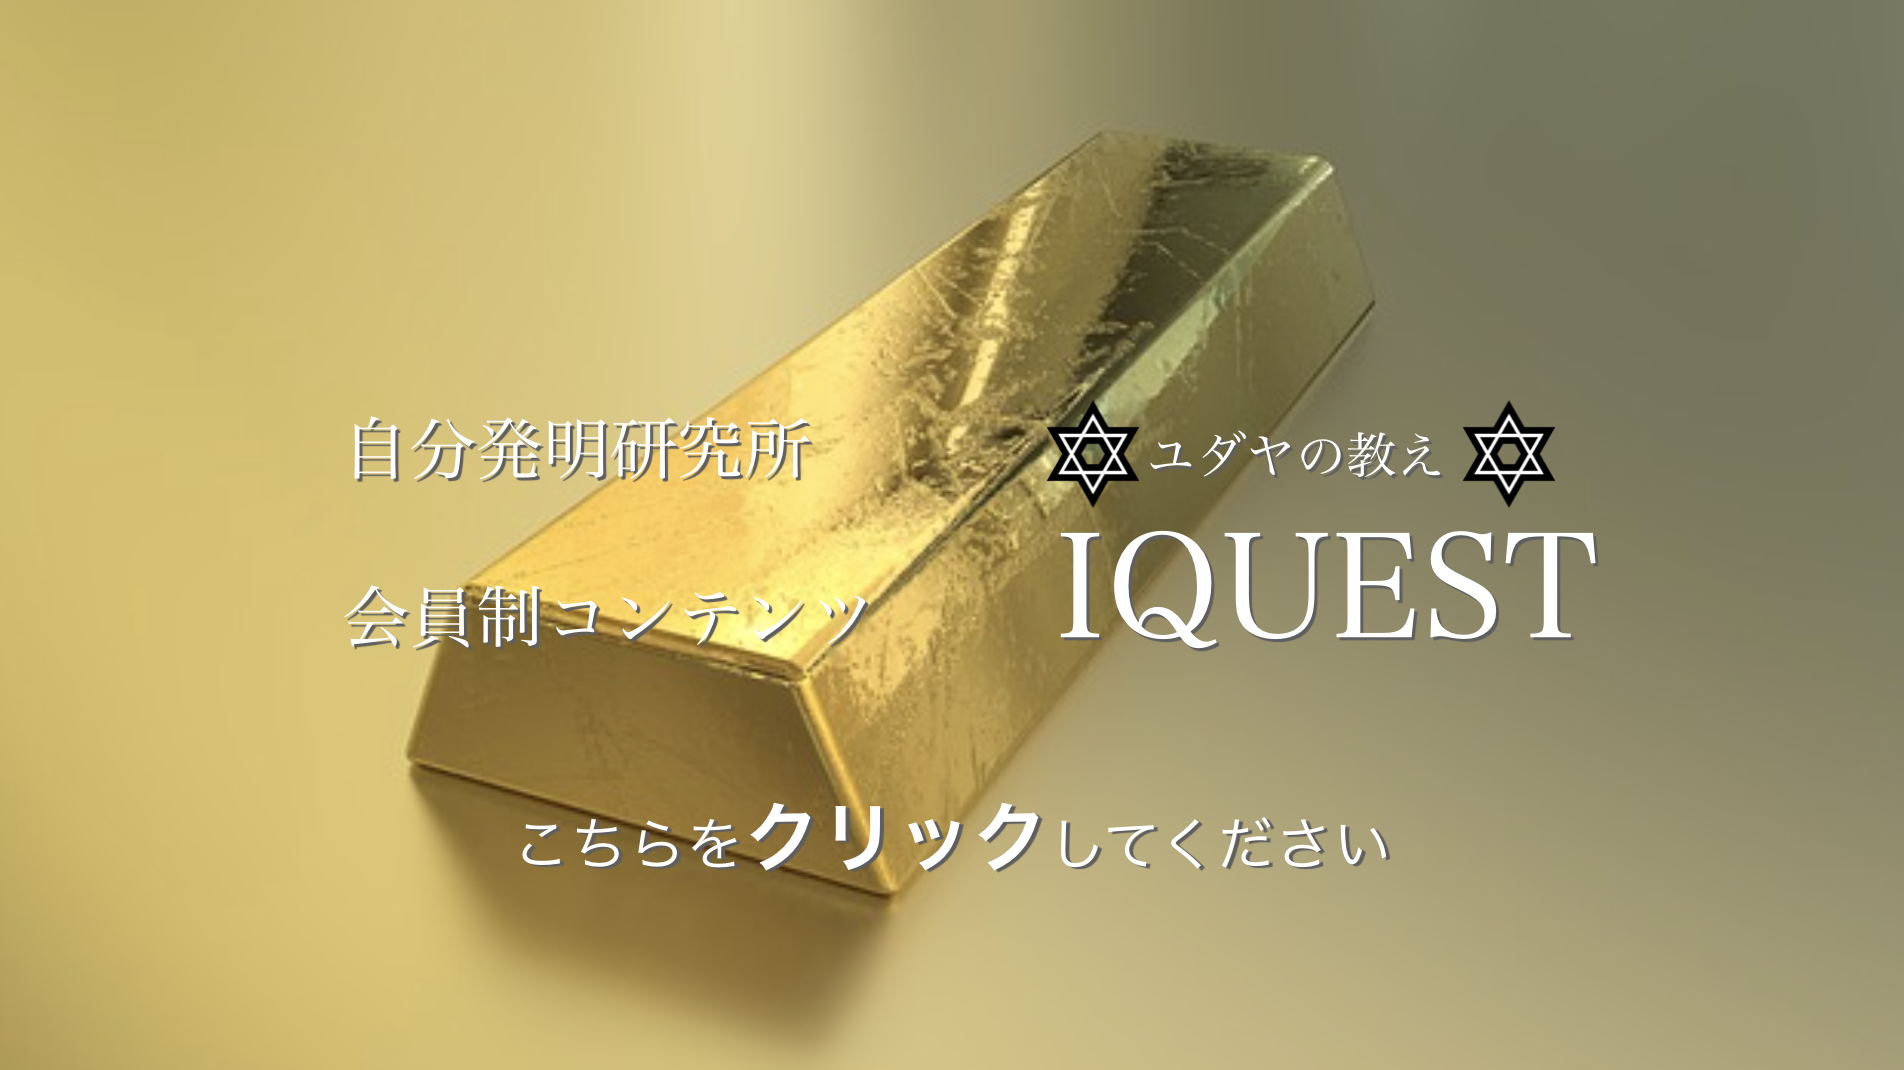 IQUEST ユダヤの教え コンテンツ集